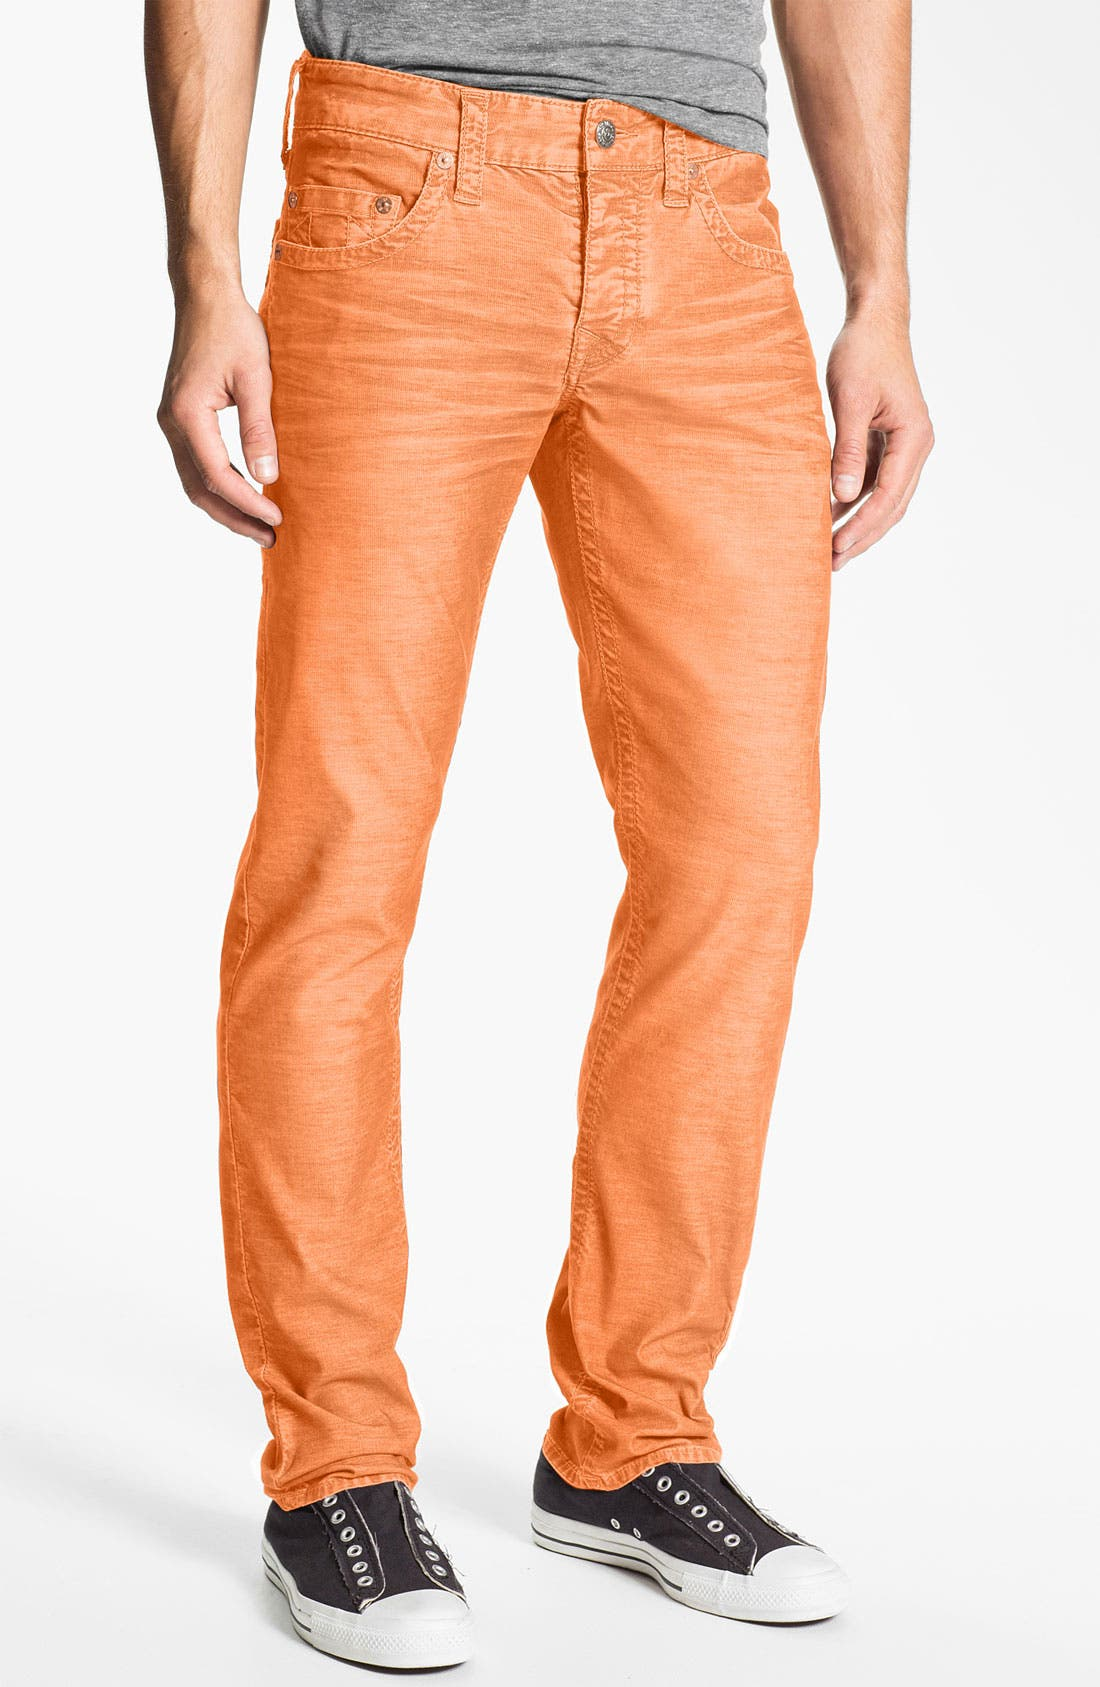 Alternate Image 2  - True Religion Brand Jeans 'Geno' Slim Corduroy Pants (Online Only)